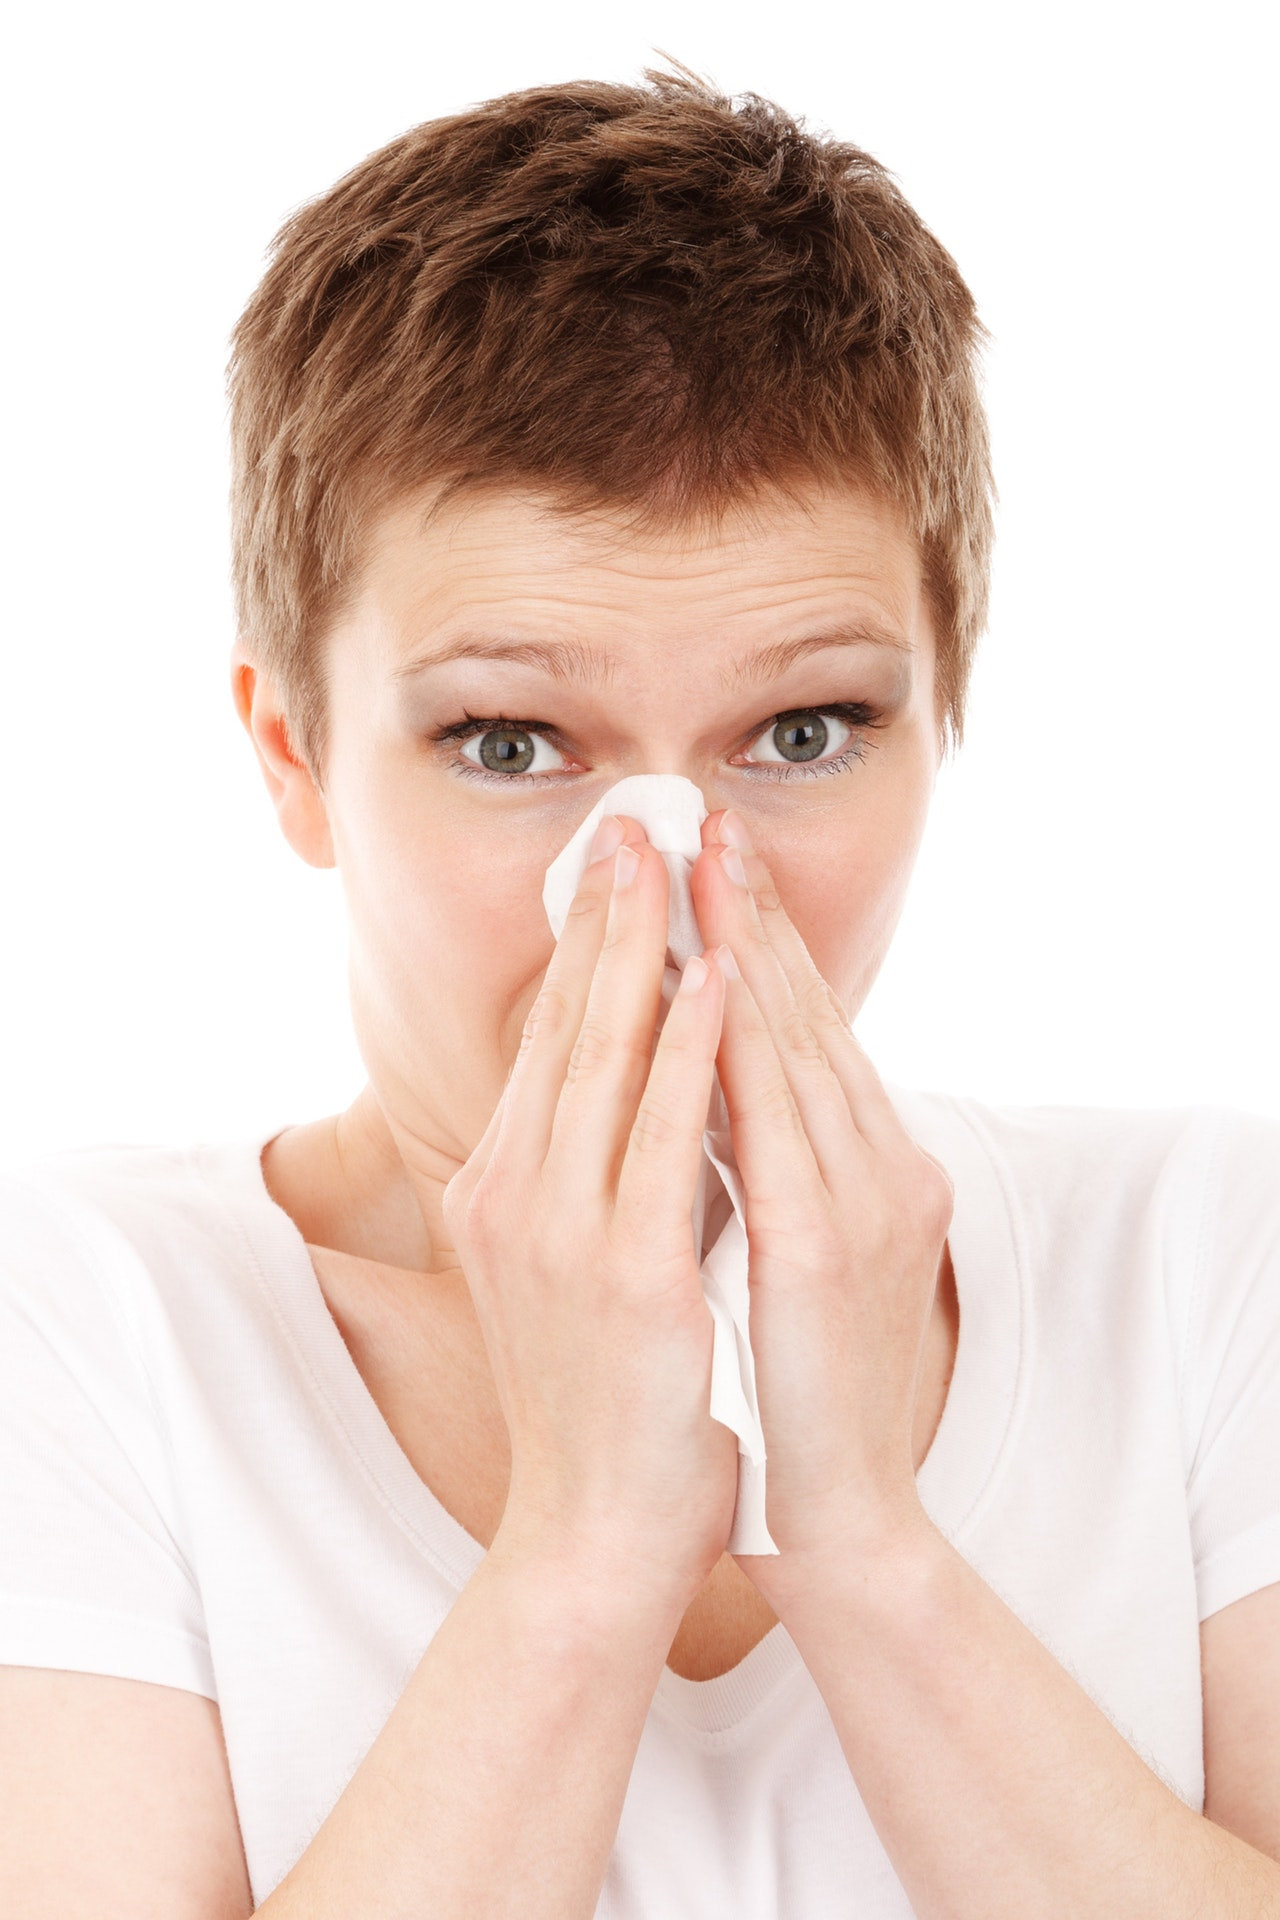 Old Fashioned instruction For Preventing Allergies And Chemical Sensitivities